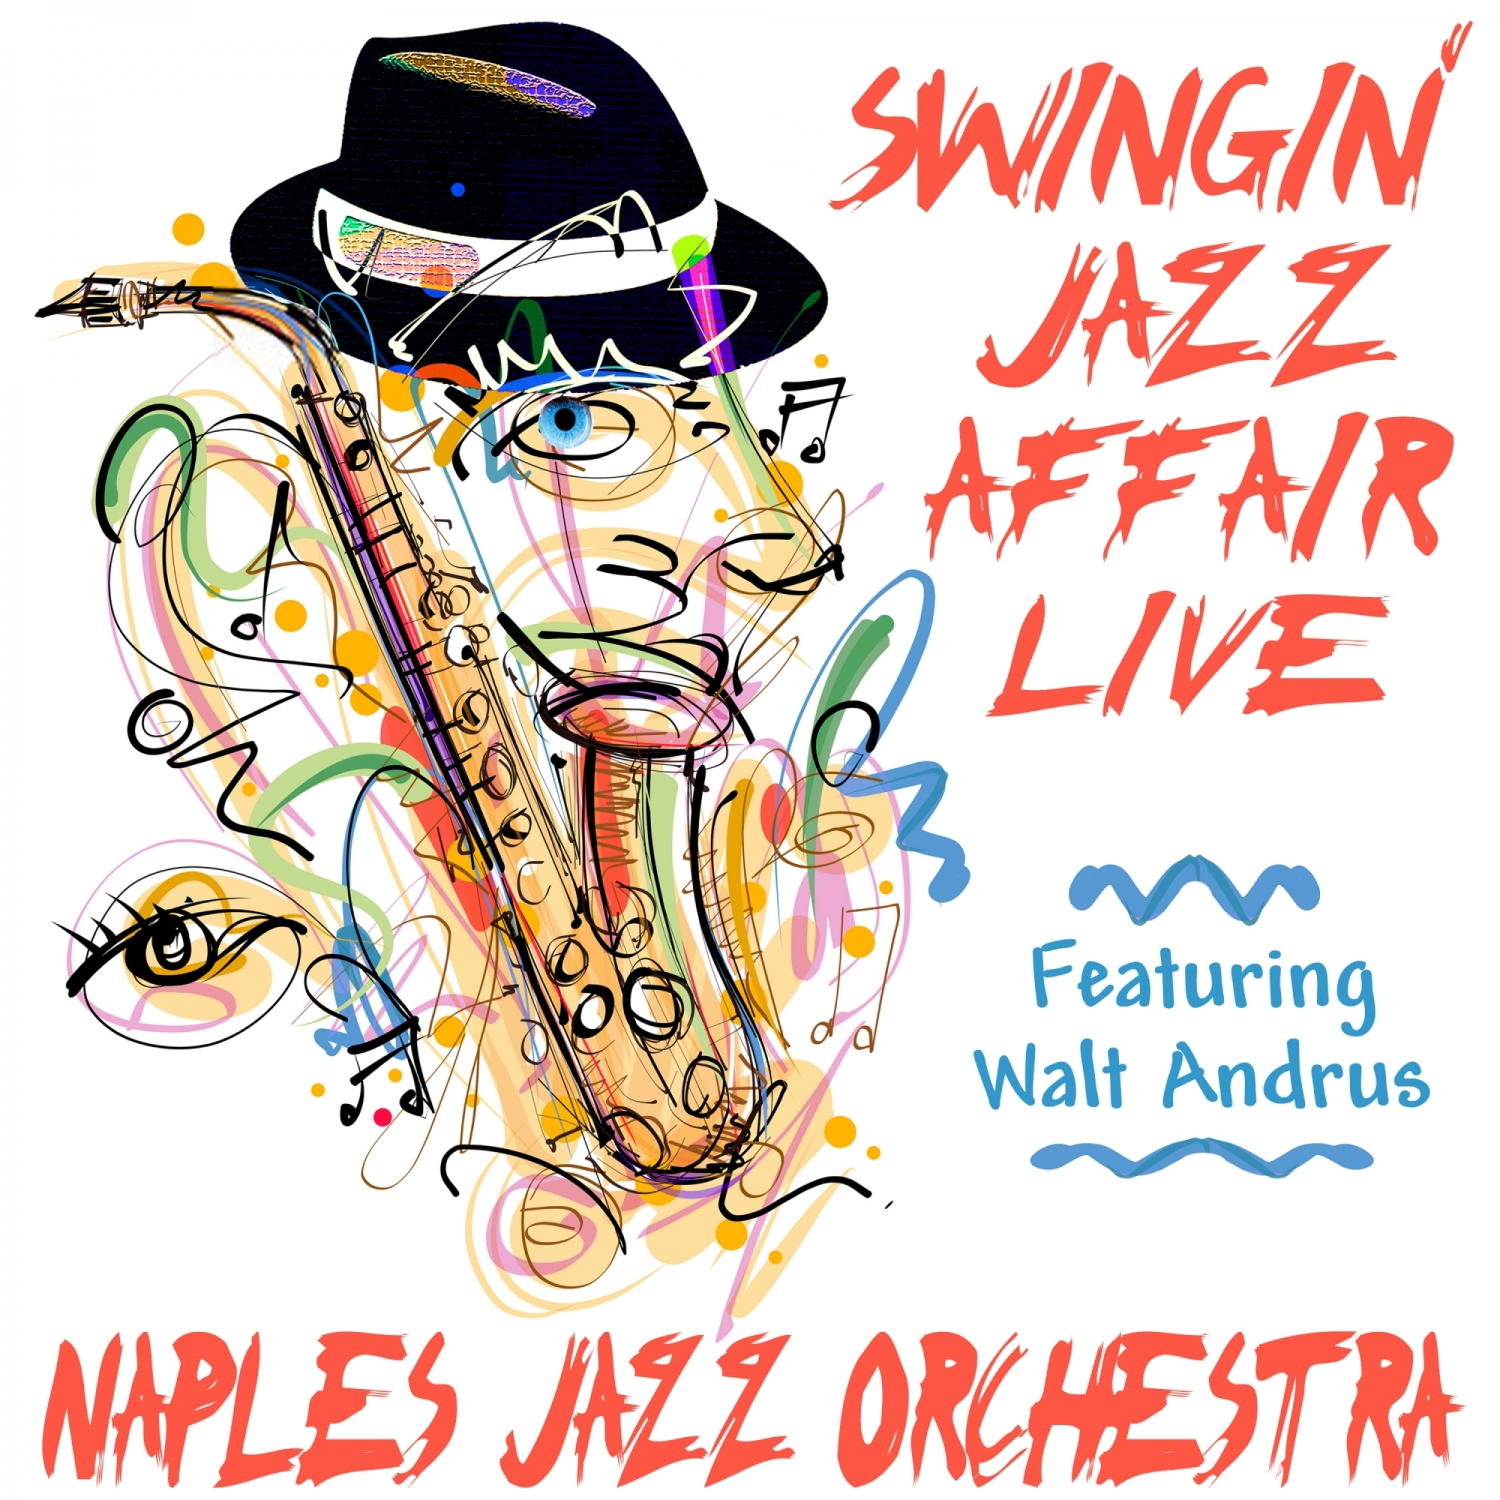 The Naples Jazz Orchestra  - Nancy (with the Laughing Face)  (feat. Walt Andrus)